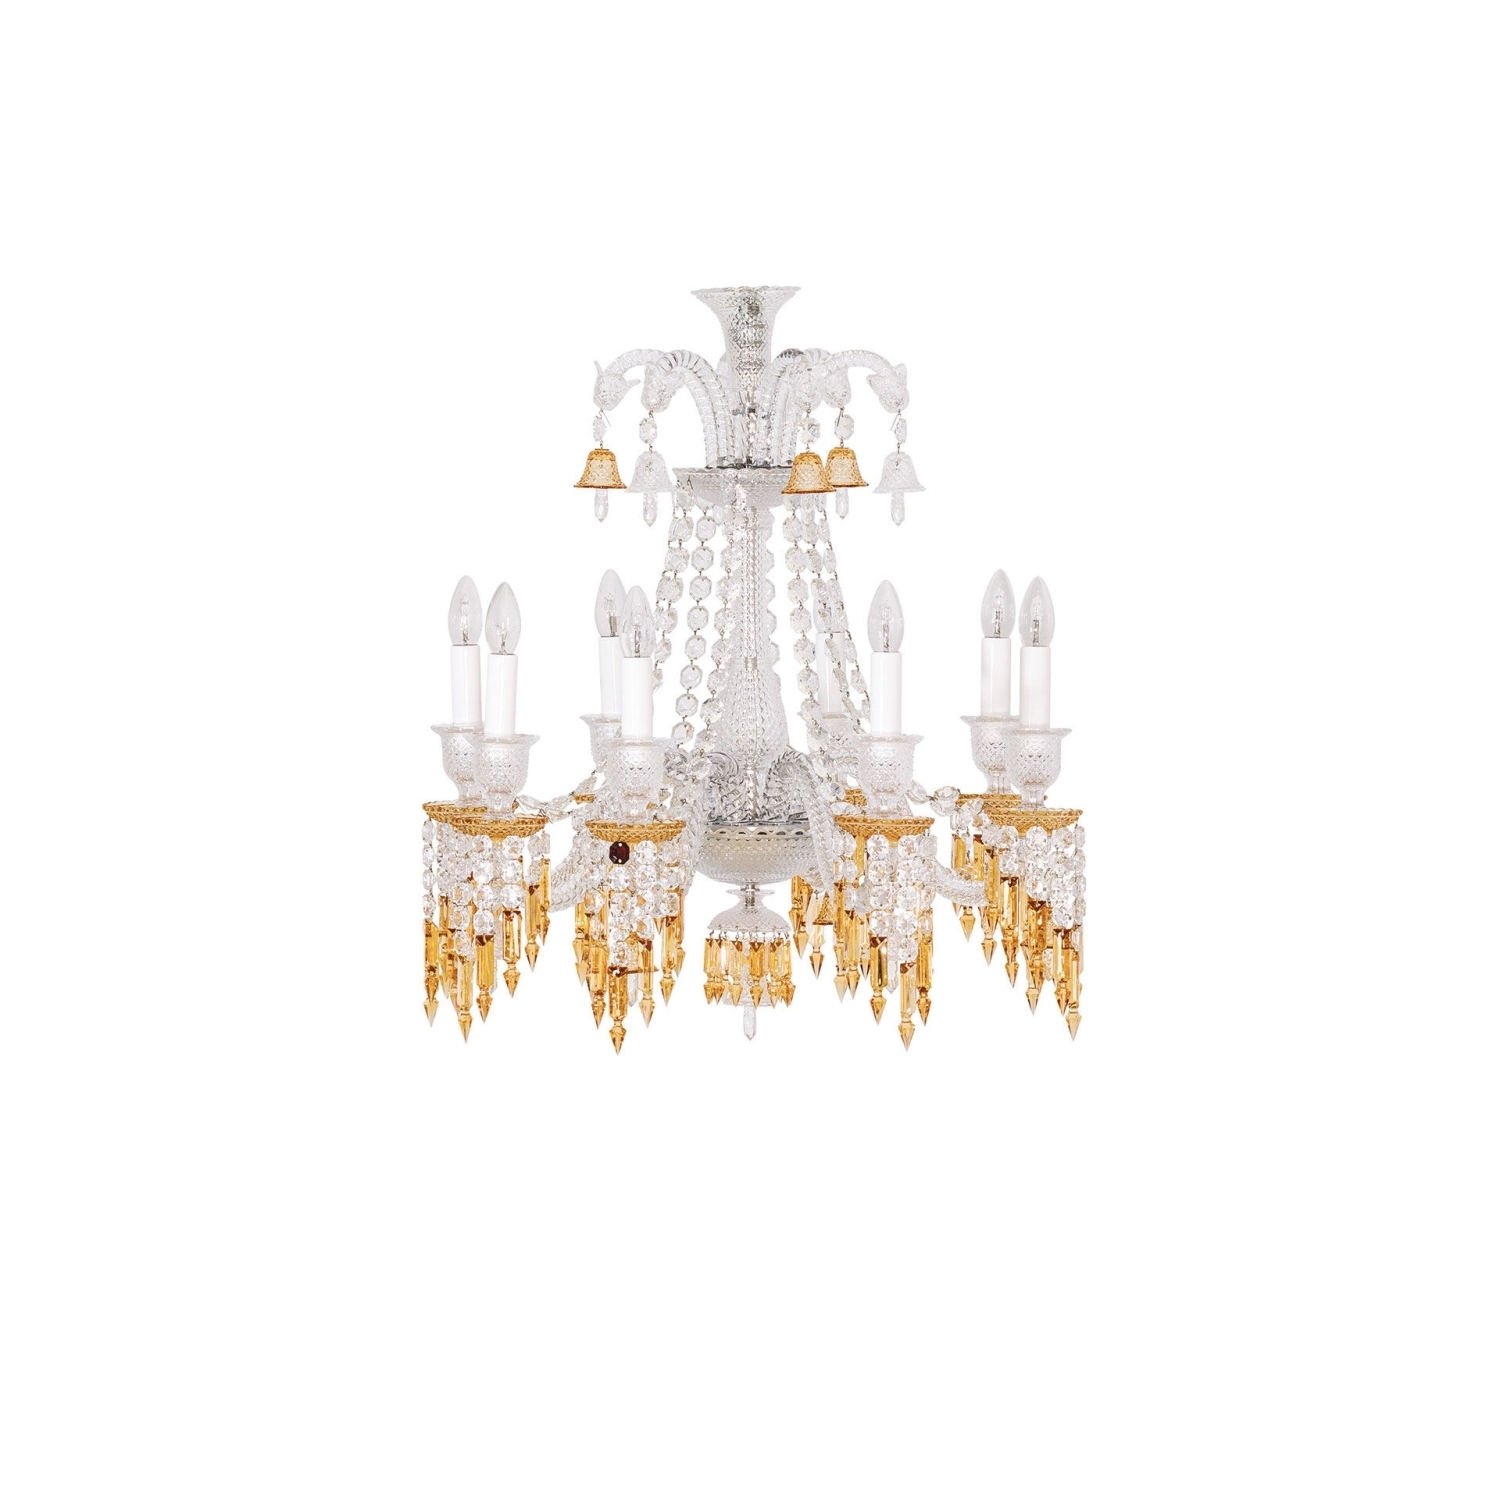 Chandelier 8l Baccarat Zenith Charleston 2809404 With Regard To Well Known Short Chandelier Lights (View 6 of 20)